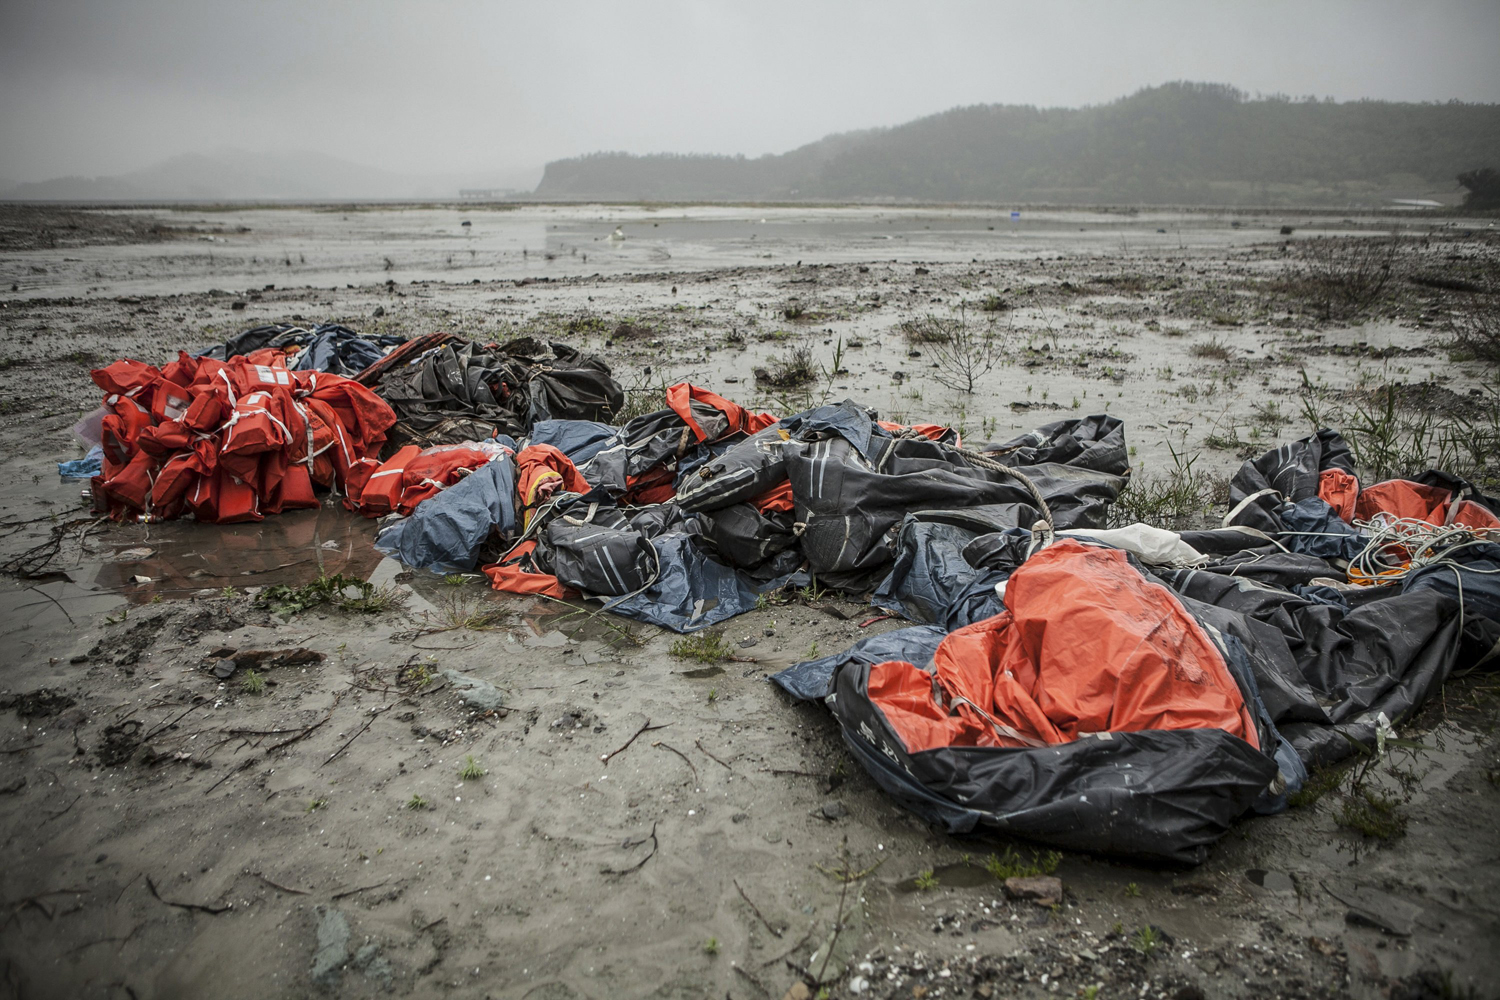 Apr. 28, 2014. Life vests and rafts from the sunken Sewol ferry sit at Paeng Mok Harbor in Jindo, South Korea.